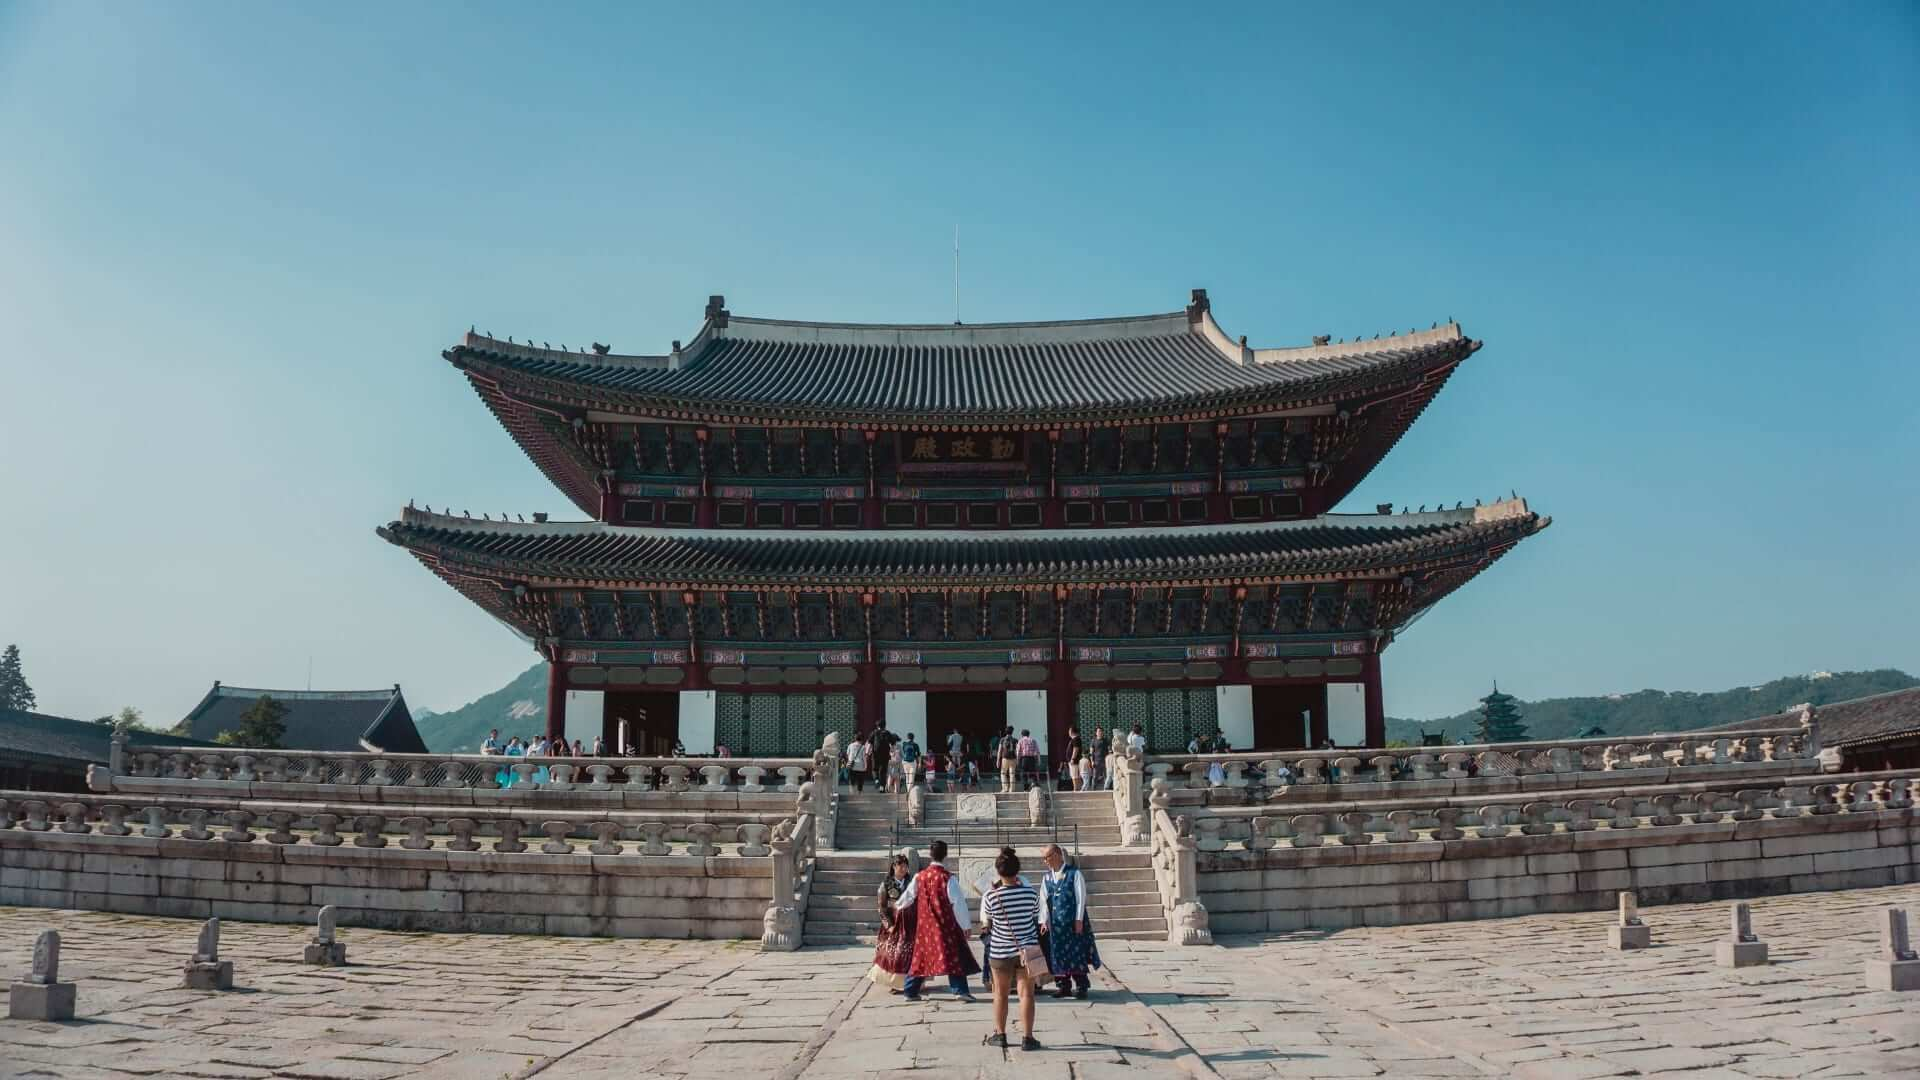 People are standing in front of a colorful temple in South-Korea.